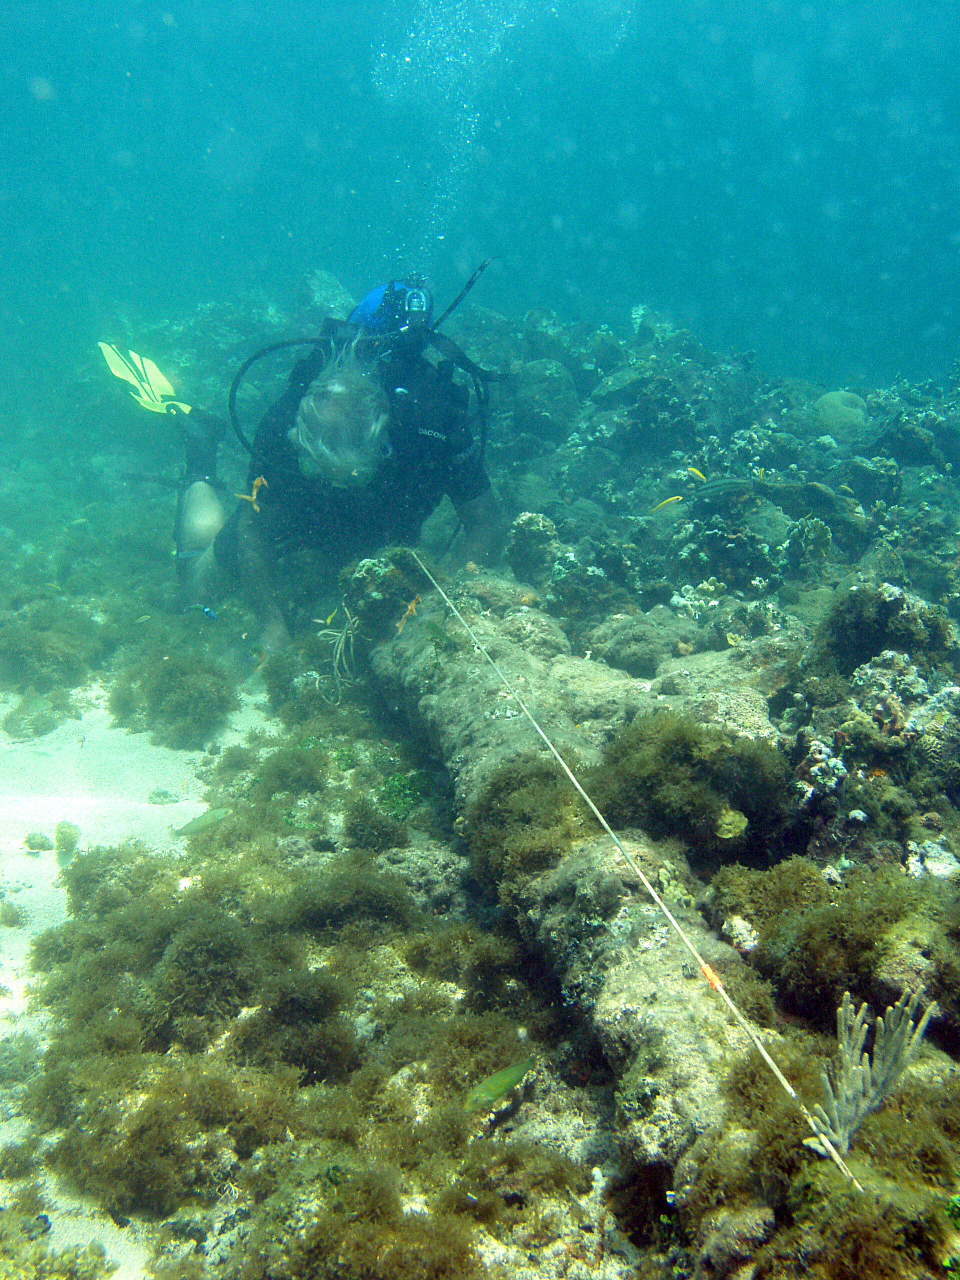 In this May 2003 photo, a diver measures a lombard cannon adjacent to a ballast pile off the north coast of Haiti at a site explorer Barry Clifford says could be the wreckage of Christopher Columbus' flagship vessel, the Santa Maria. He went back to re-explore the ship in 2014 and is confident that it is Columbus' flagship